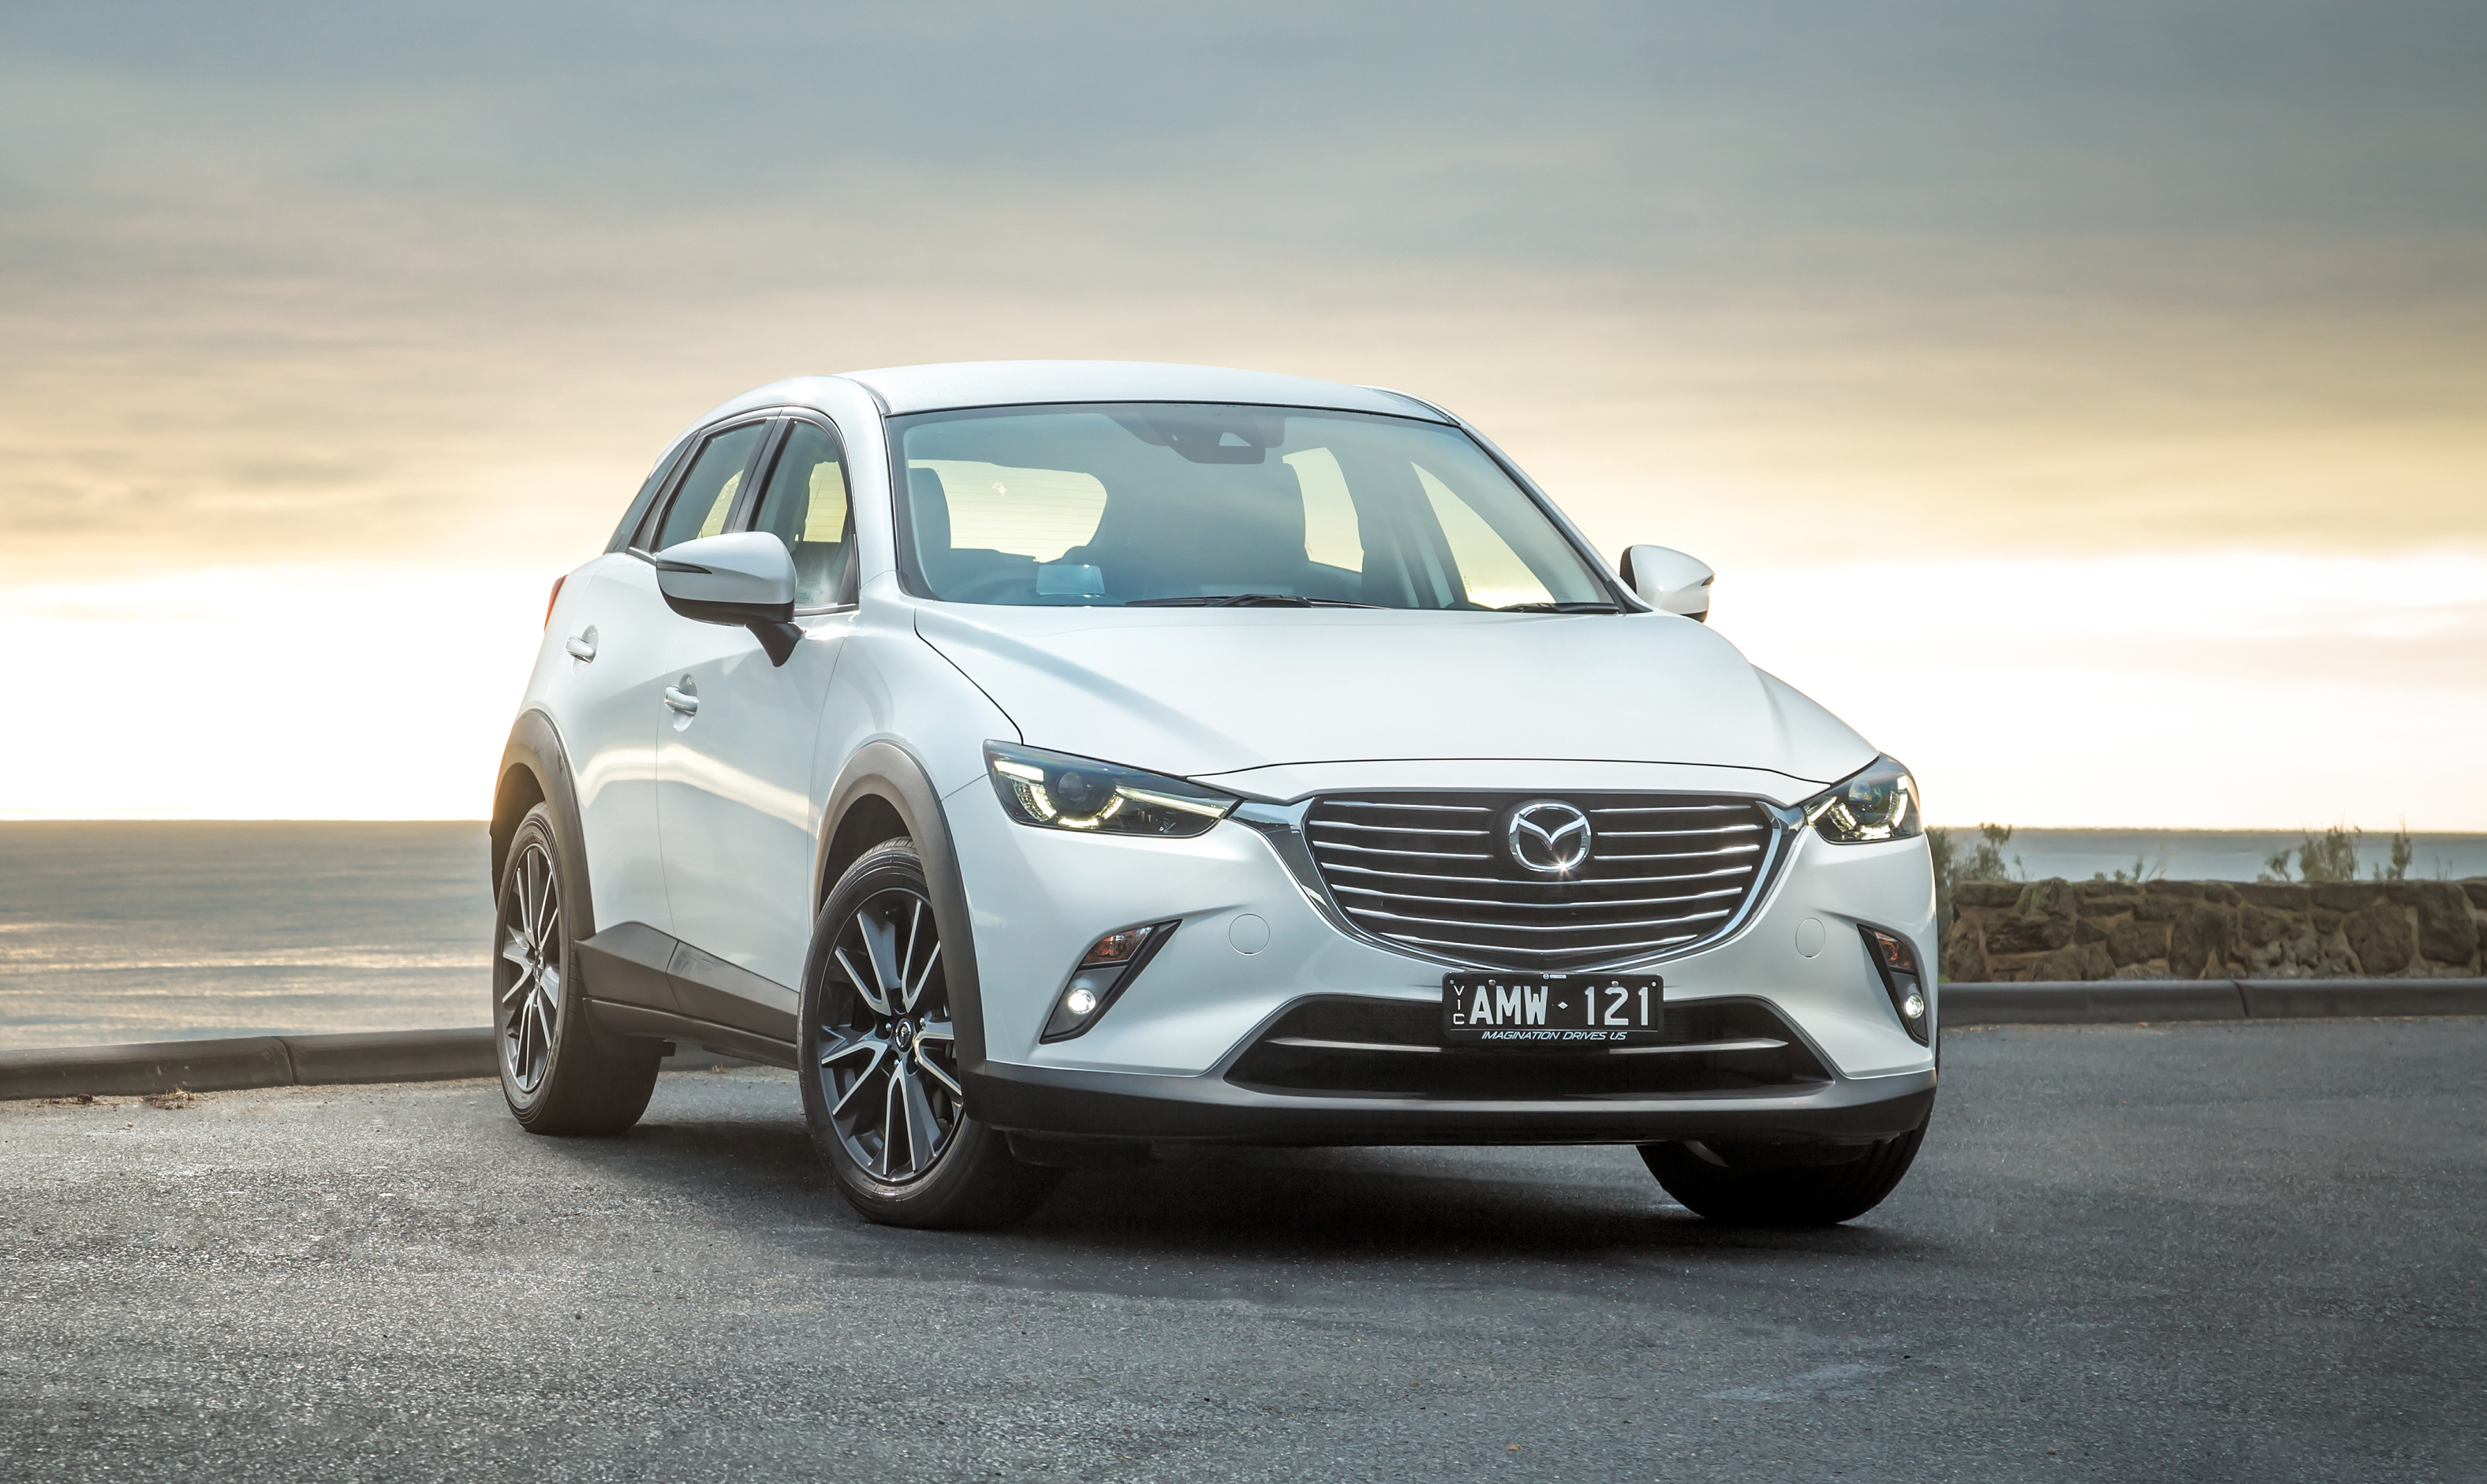 2017 mazda cx 3 pricing and specs photos 1 of 11. Black Bedroom Furniture Sets. Home Design Ideas